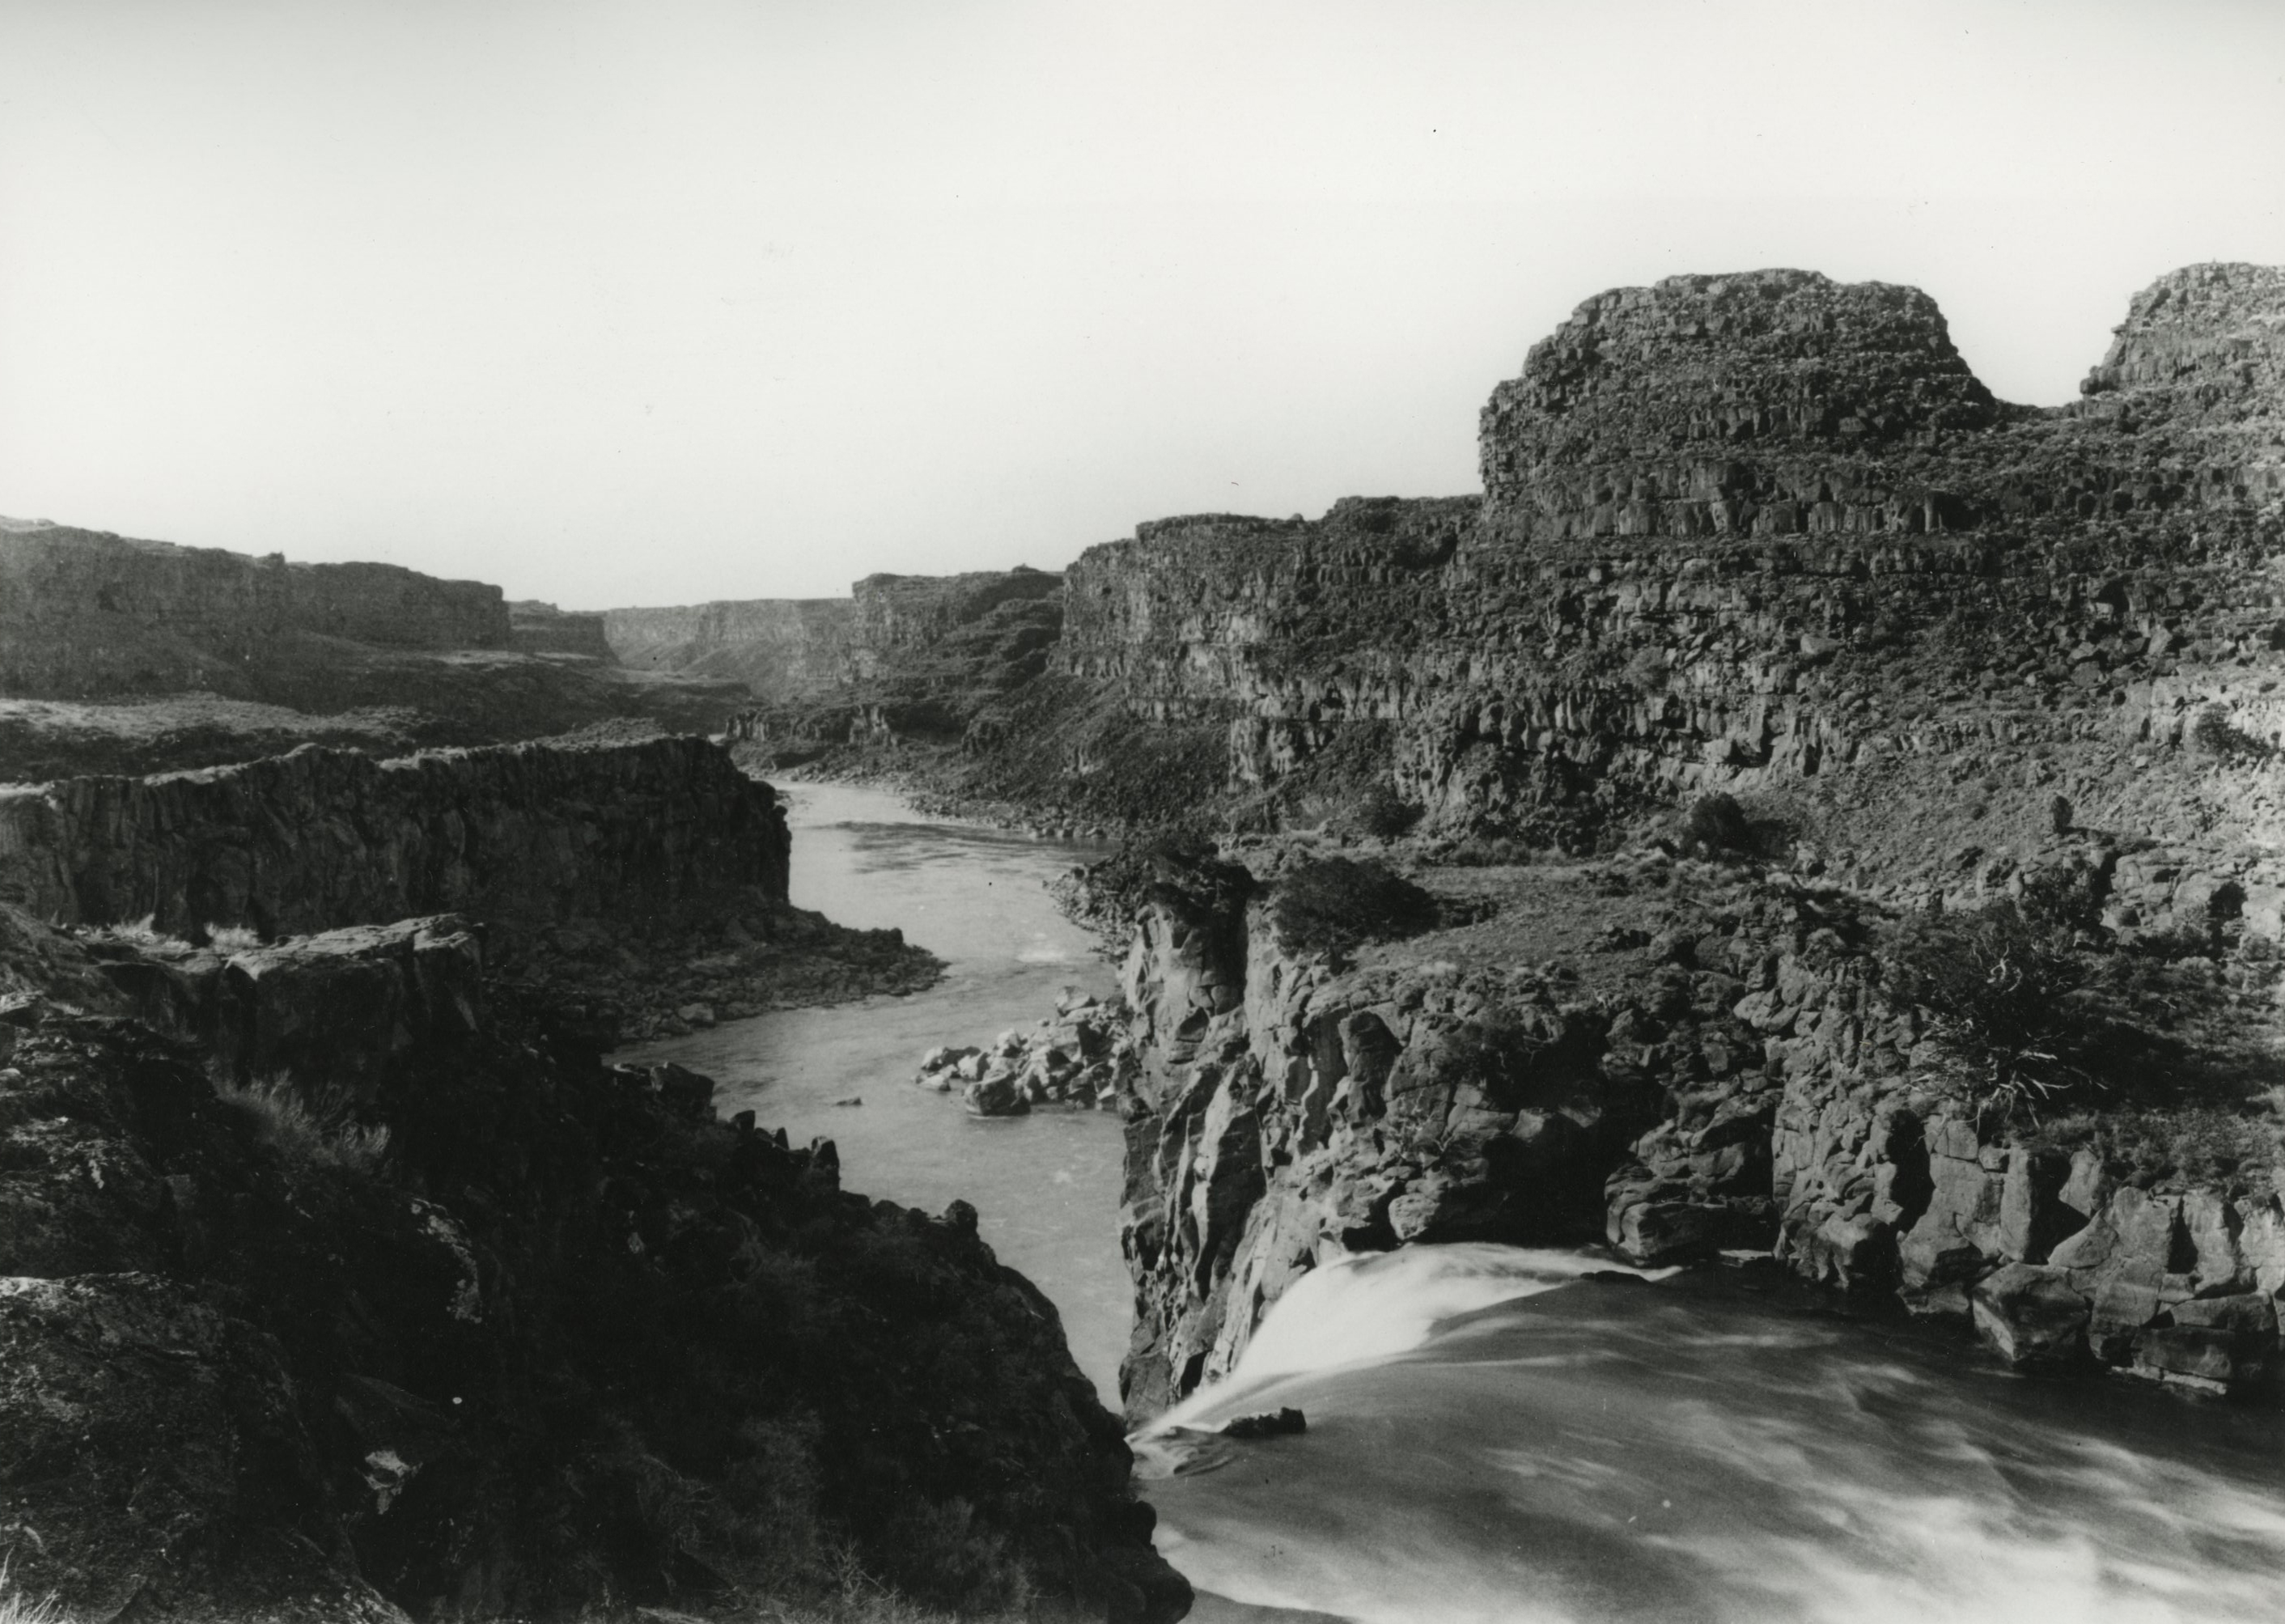 Looking down the Snake River